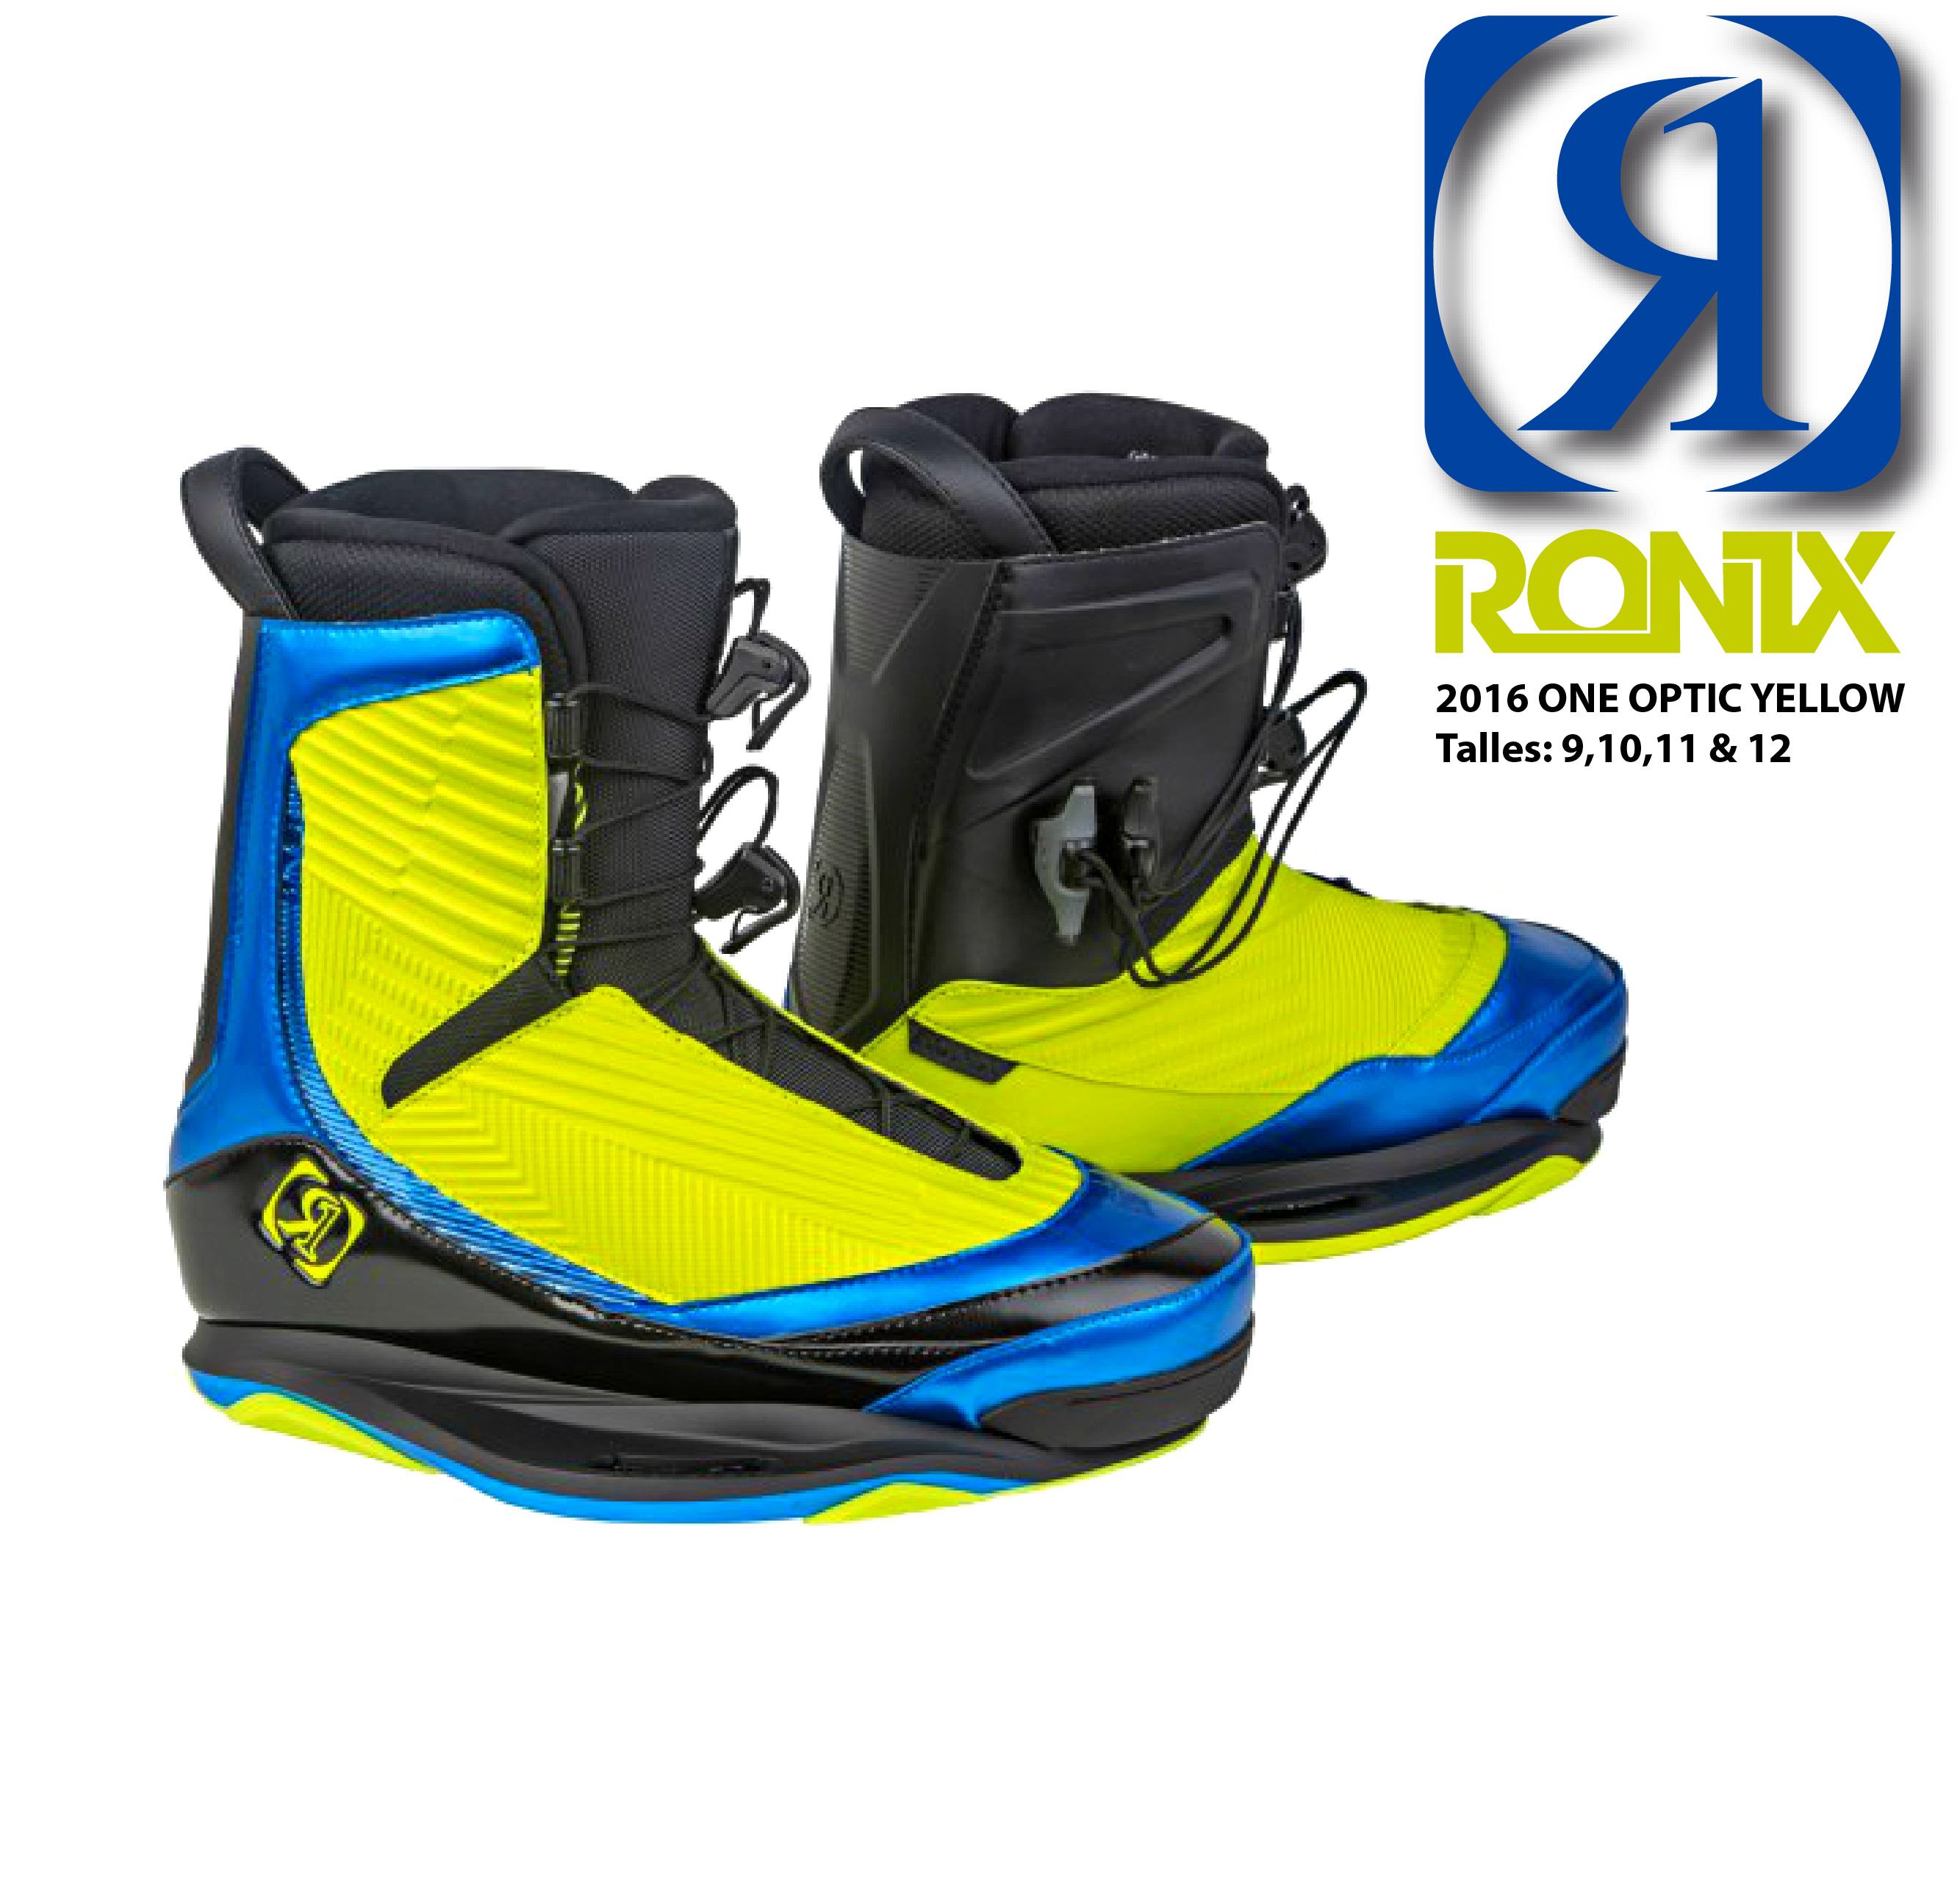 2016 RONIX One Yellow Optic